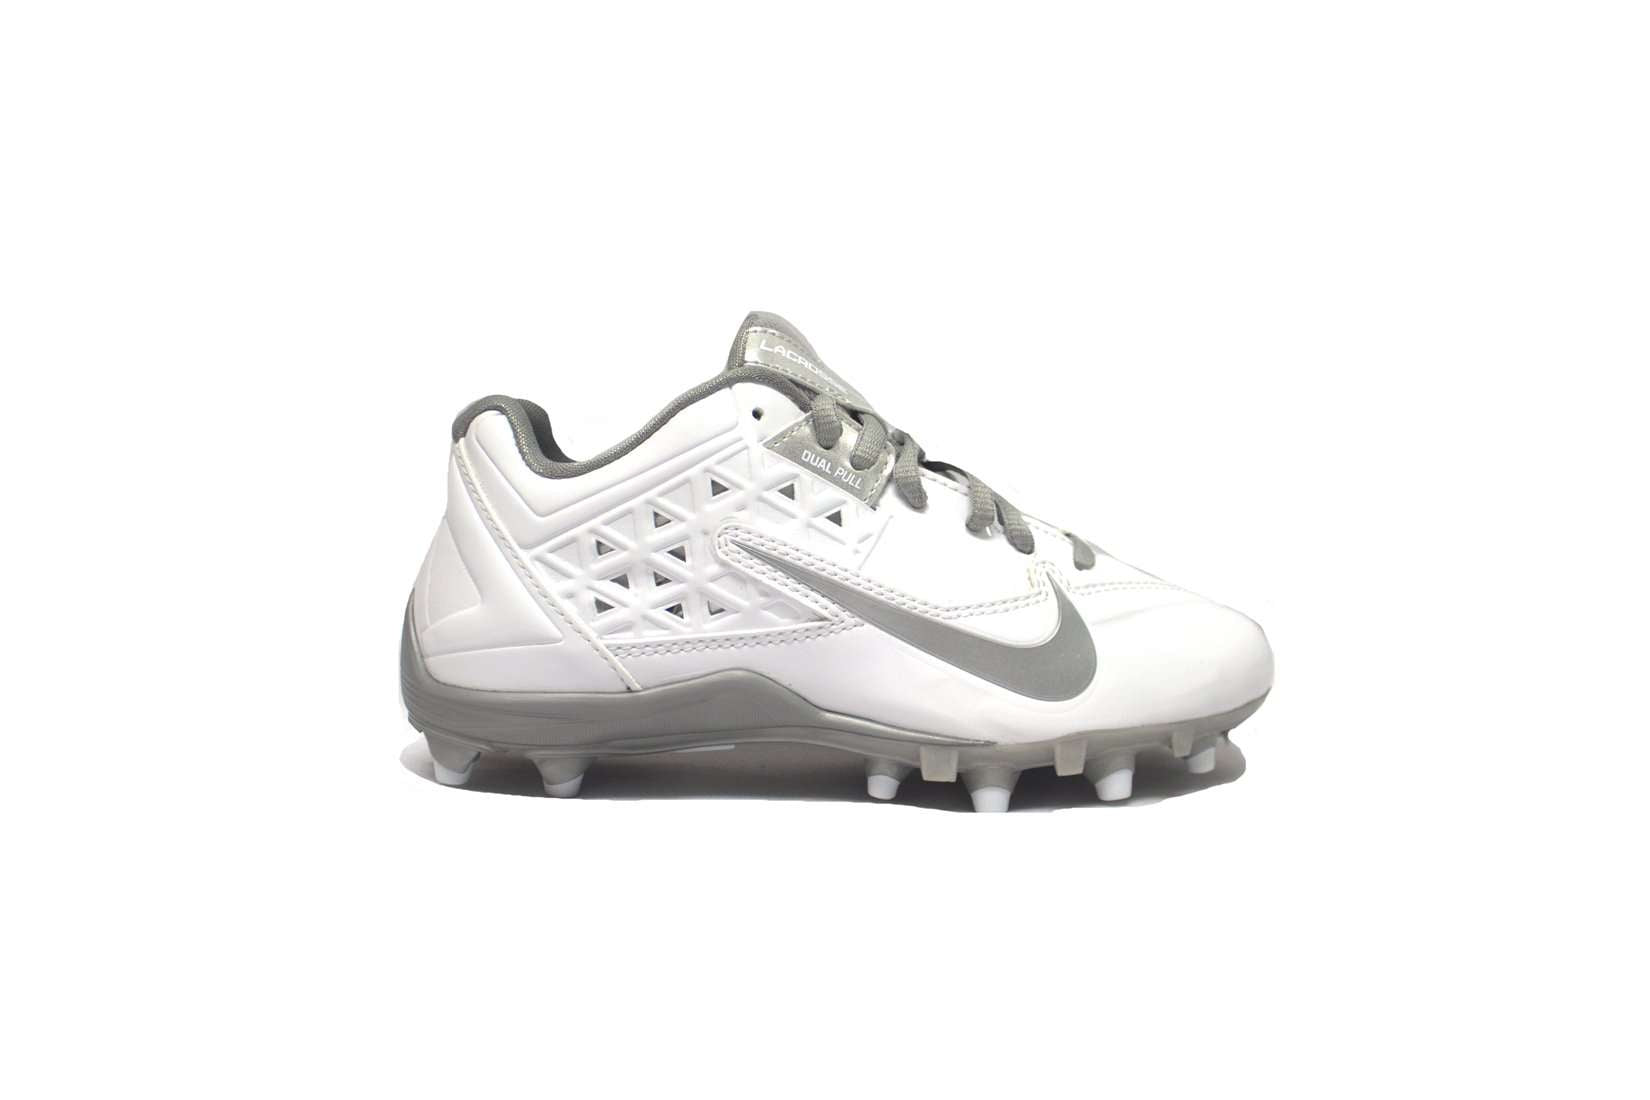 9395853fc6aa Nike Women's Speedlax 4 Lacrosse Cleats - 5 / White/Metallic Silver